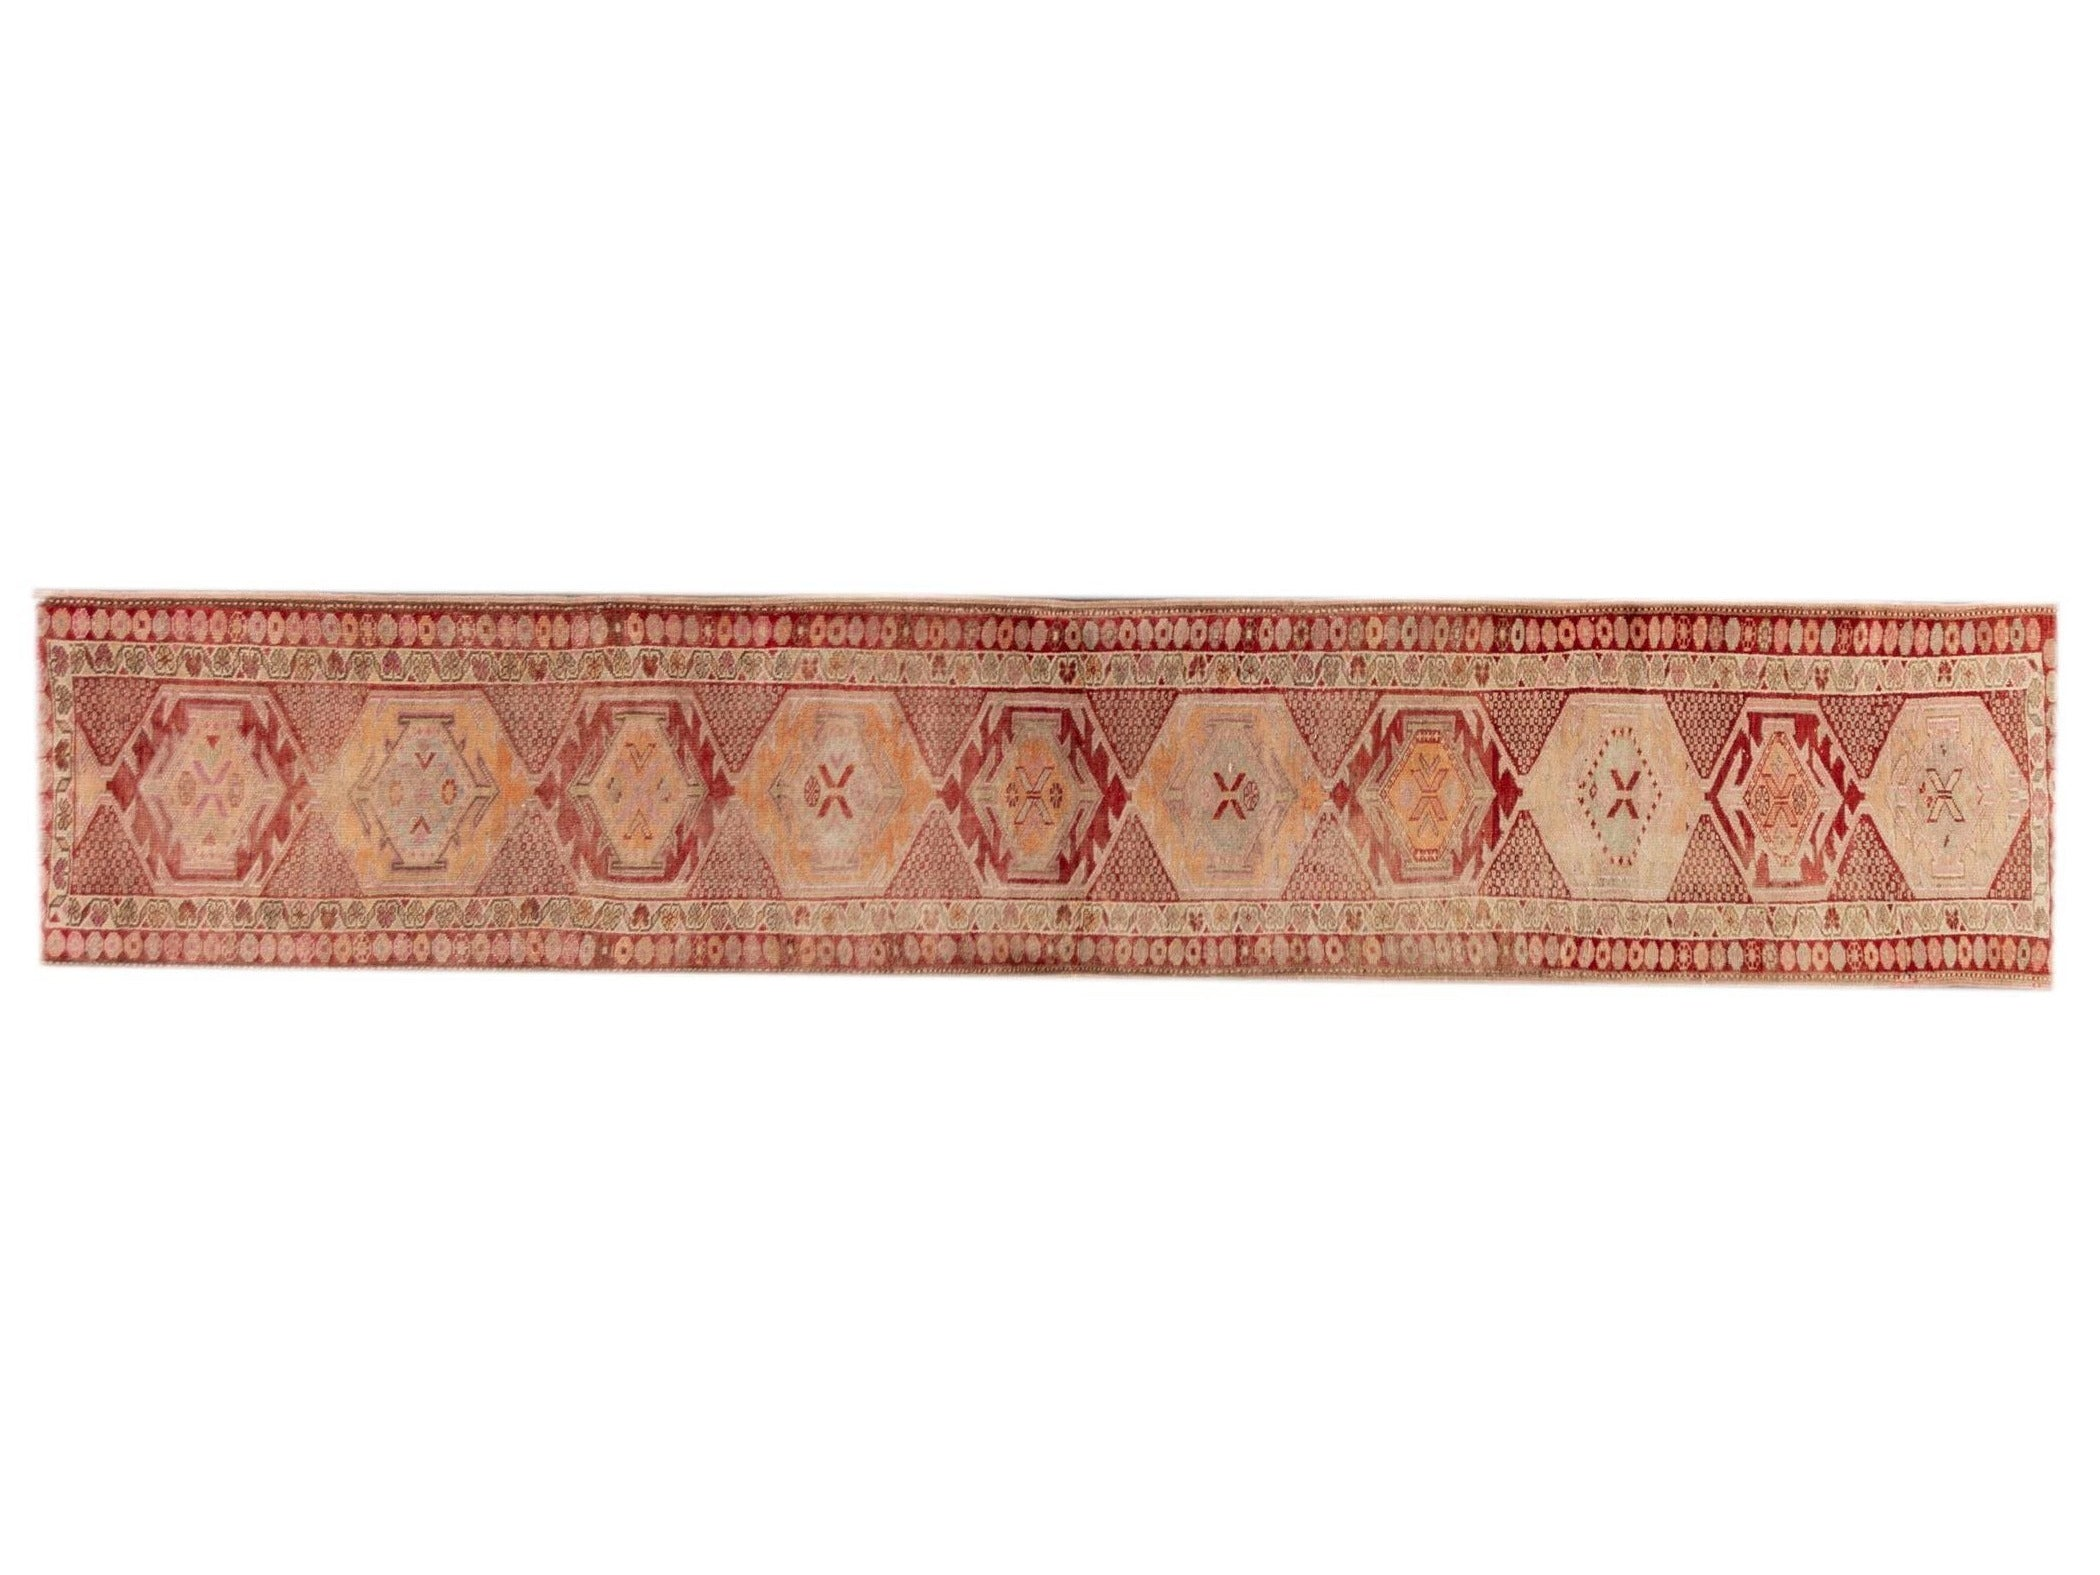 20th Century Vintage Turkish Runner Rug, 3X15